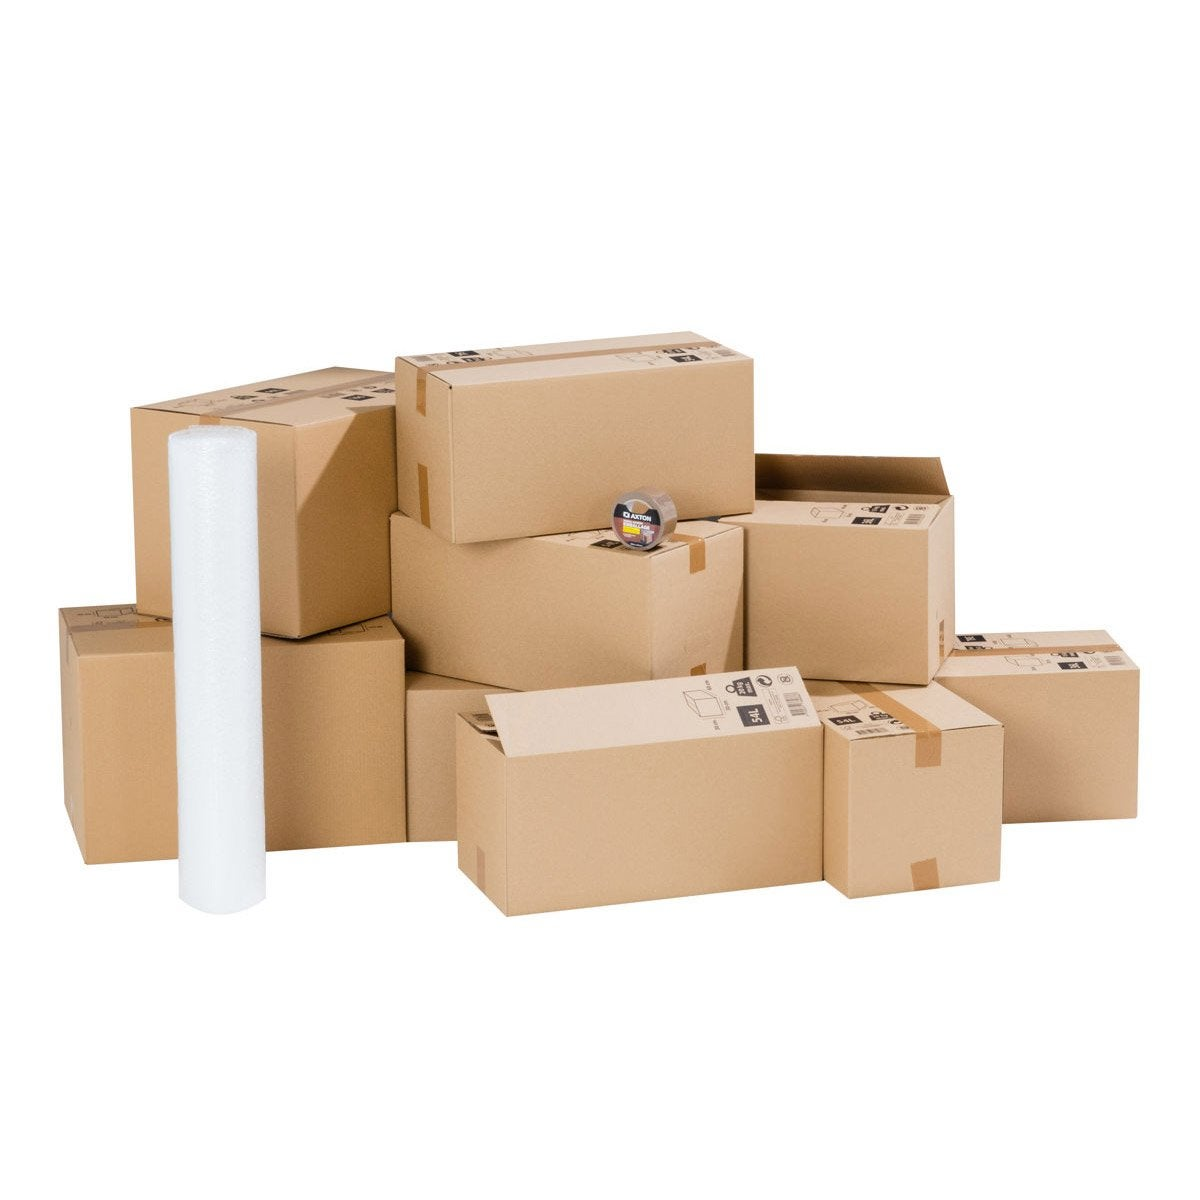 kit d m nagement pour logement 20m cartons film bulle. Black Bedroom Furniture Sets. Home Design Ideas